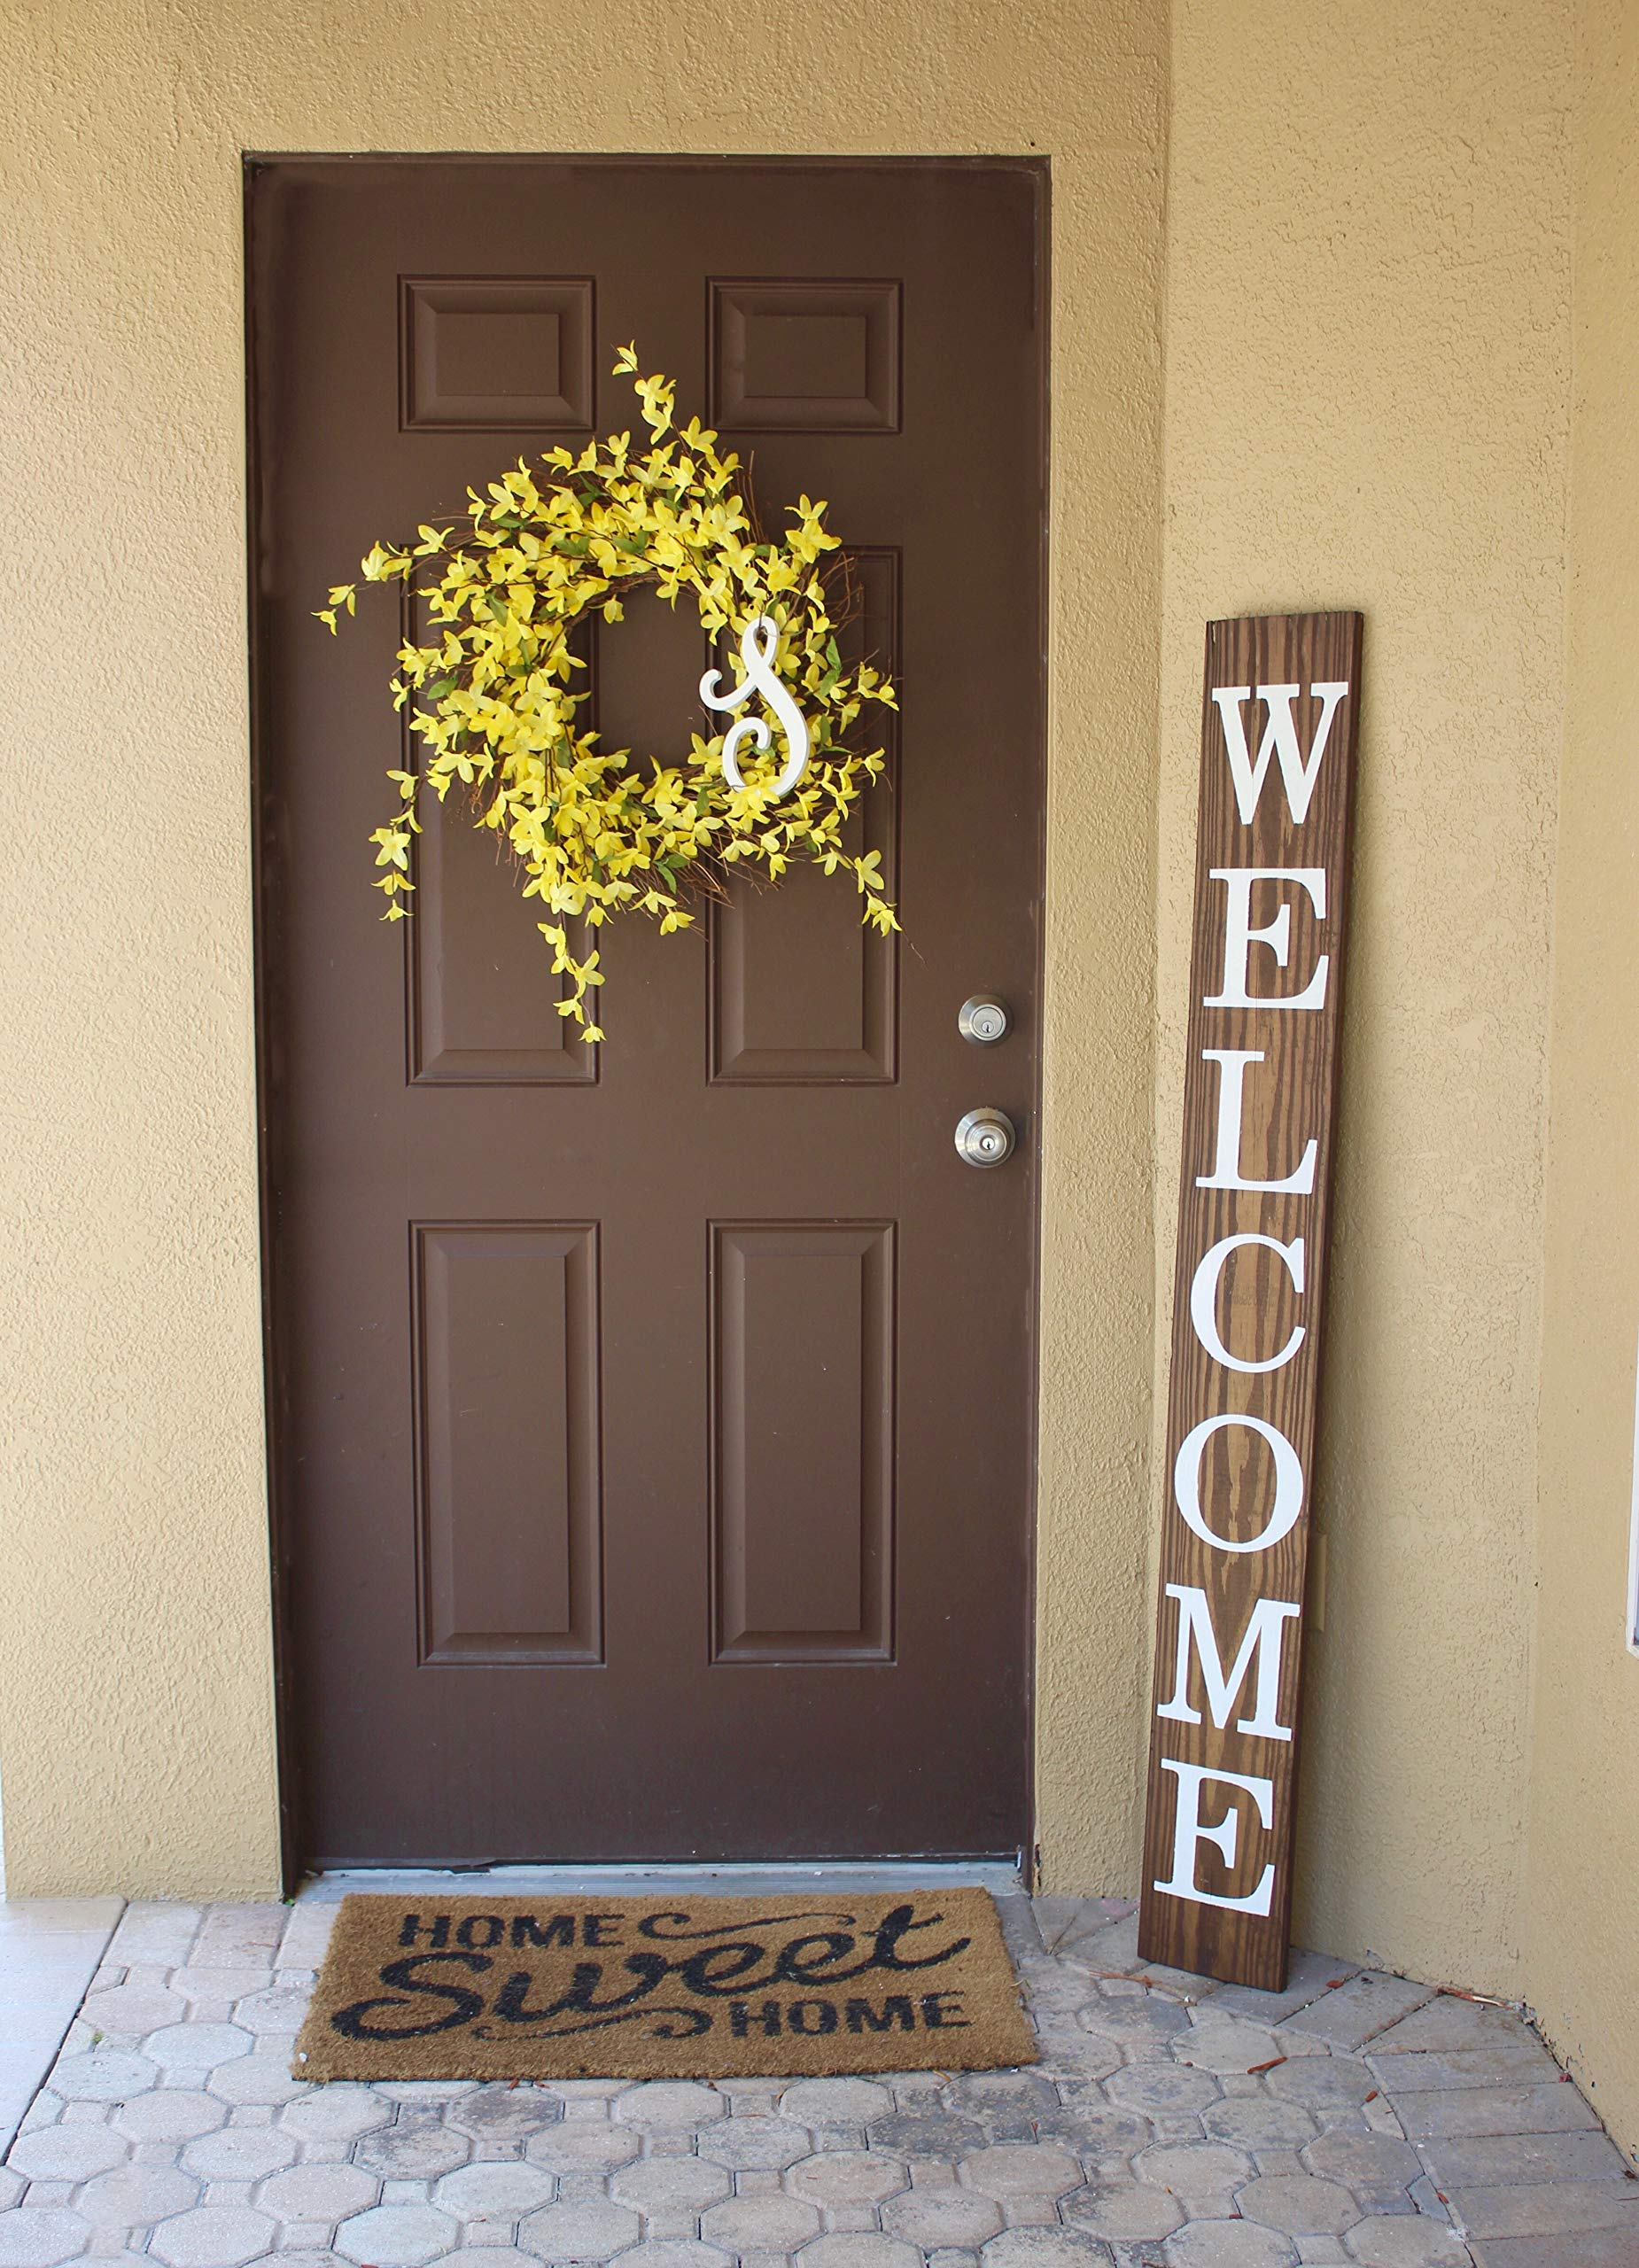 SmithFarmCo Welcome Sign for Front Porch/Front Door Made with Real Wood 5 feet Tall Large Rustic Farmhouse Style (Rustic Barnwood) by SmithFarmCo